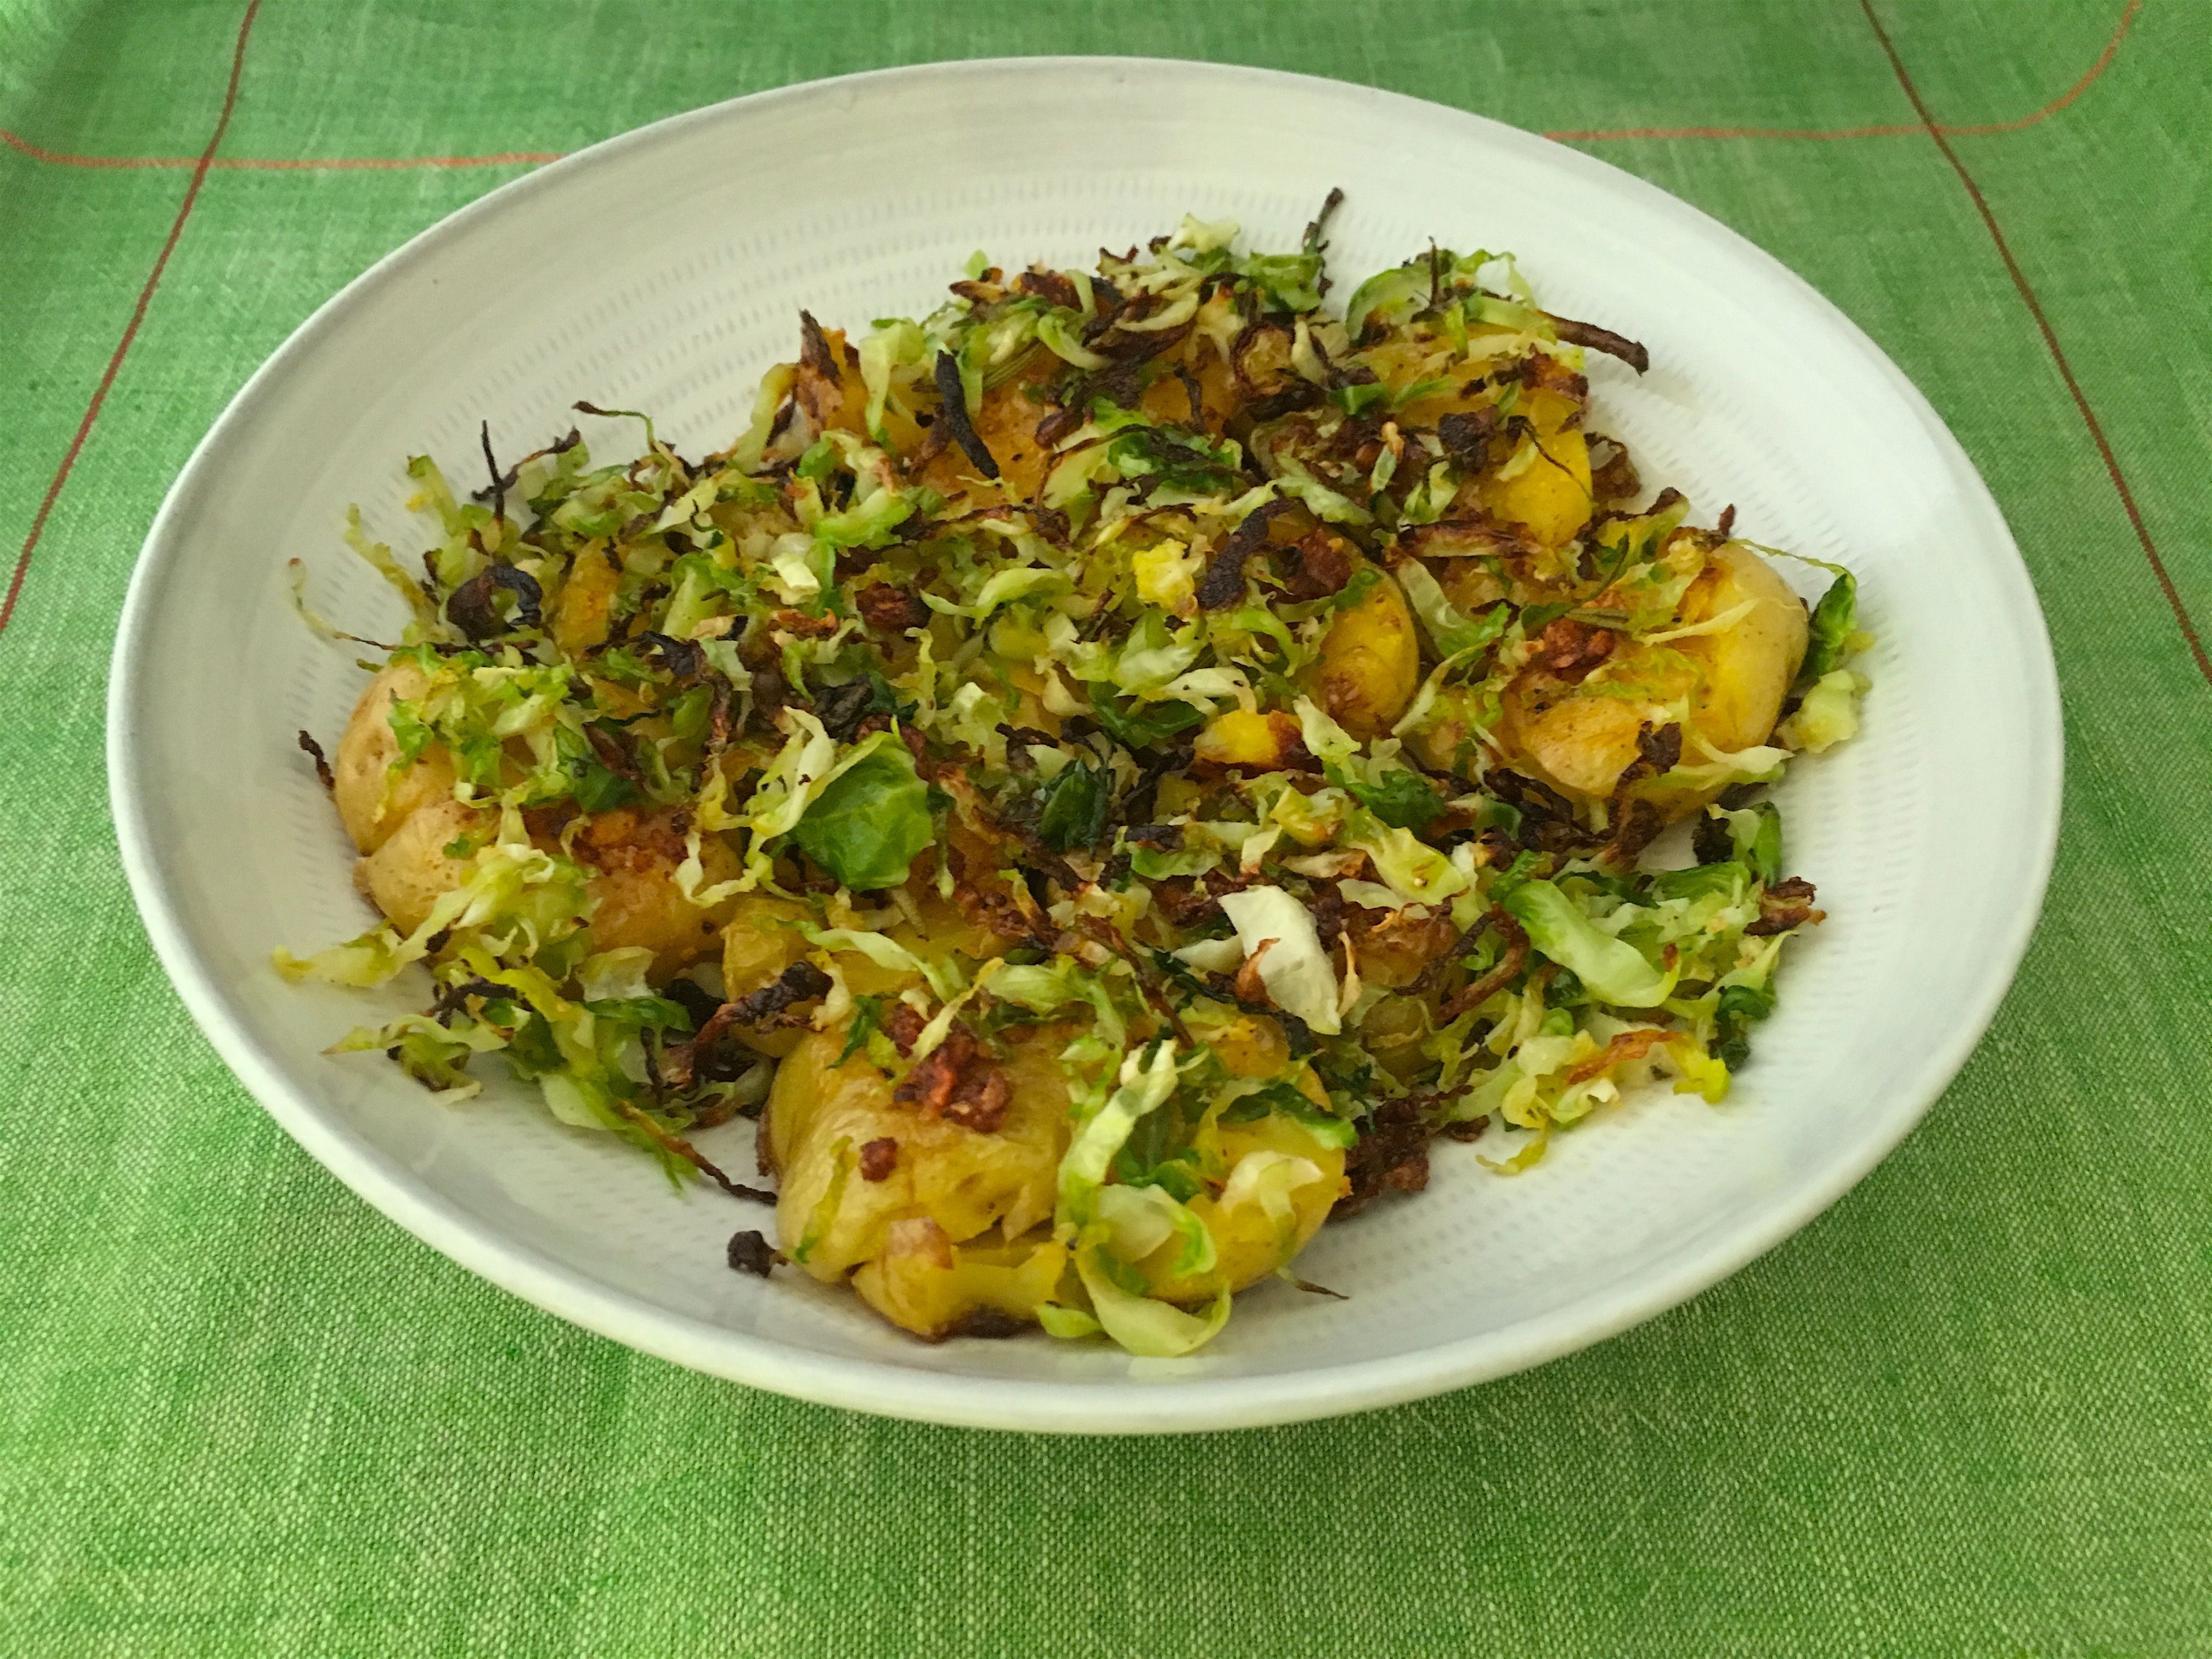 Smashed Potatoes with Shredded Brussels Sprouts #smashedbrusselsprouts Smashed Potatoes with Shredded Brussels Sprouts #smashedbrusselsprouts Smashed Potatoes with Shredded Brussels Sprouts #smashedbrusselsprouts Smashed Potatoes with Shredded Brussels Sprouts #smashedbrusselsprouts Smashed Potatoes with Shredded Brussels Sprouts #smashedbrusselsprouts Smashed Potatoes with Shredded Brussels Sprouts #smashedbrusselsprouts Smashed Potatoes with Shredded Brussels Sprouts #smashedbrusselsprouts Sma #smashedbrusselsprouts